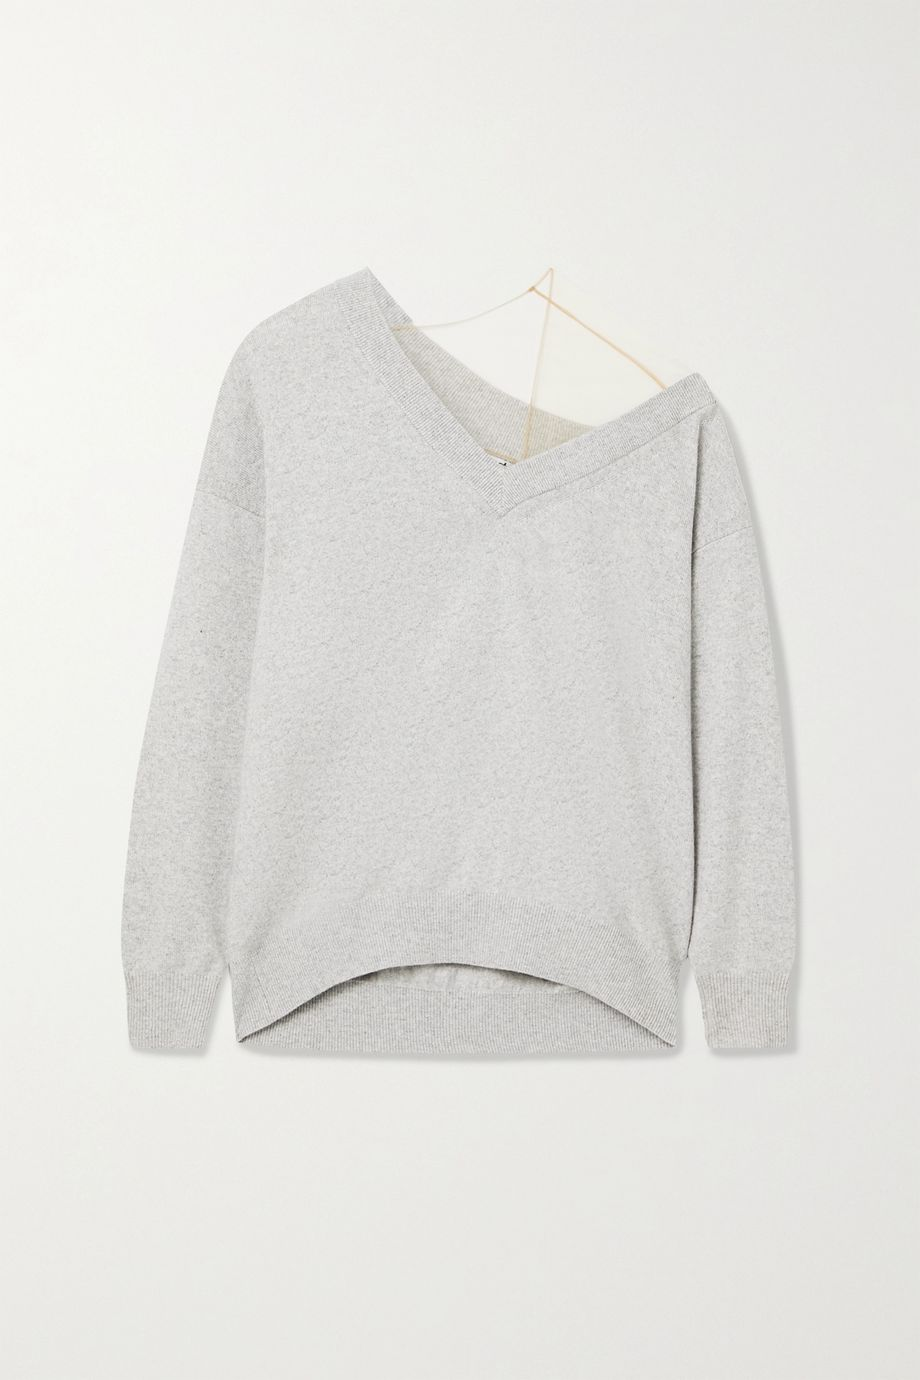 Alexander Wang Asymmetric tulle-trimmed wool-blend sweater